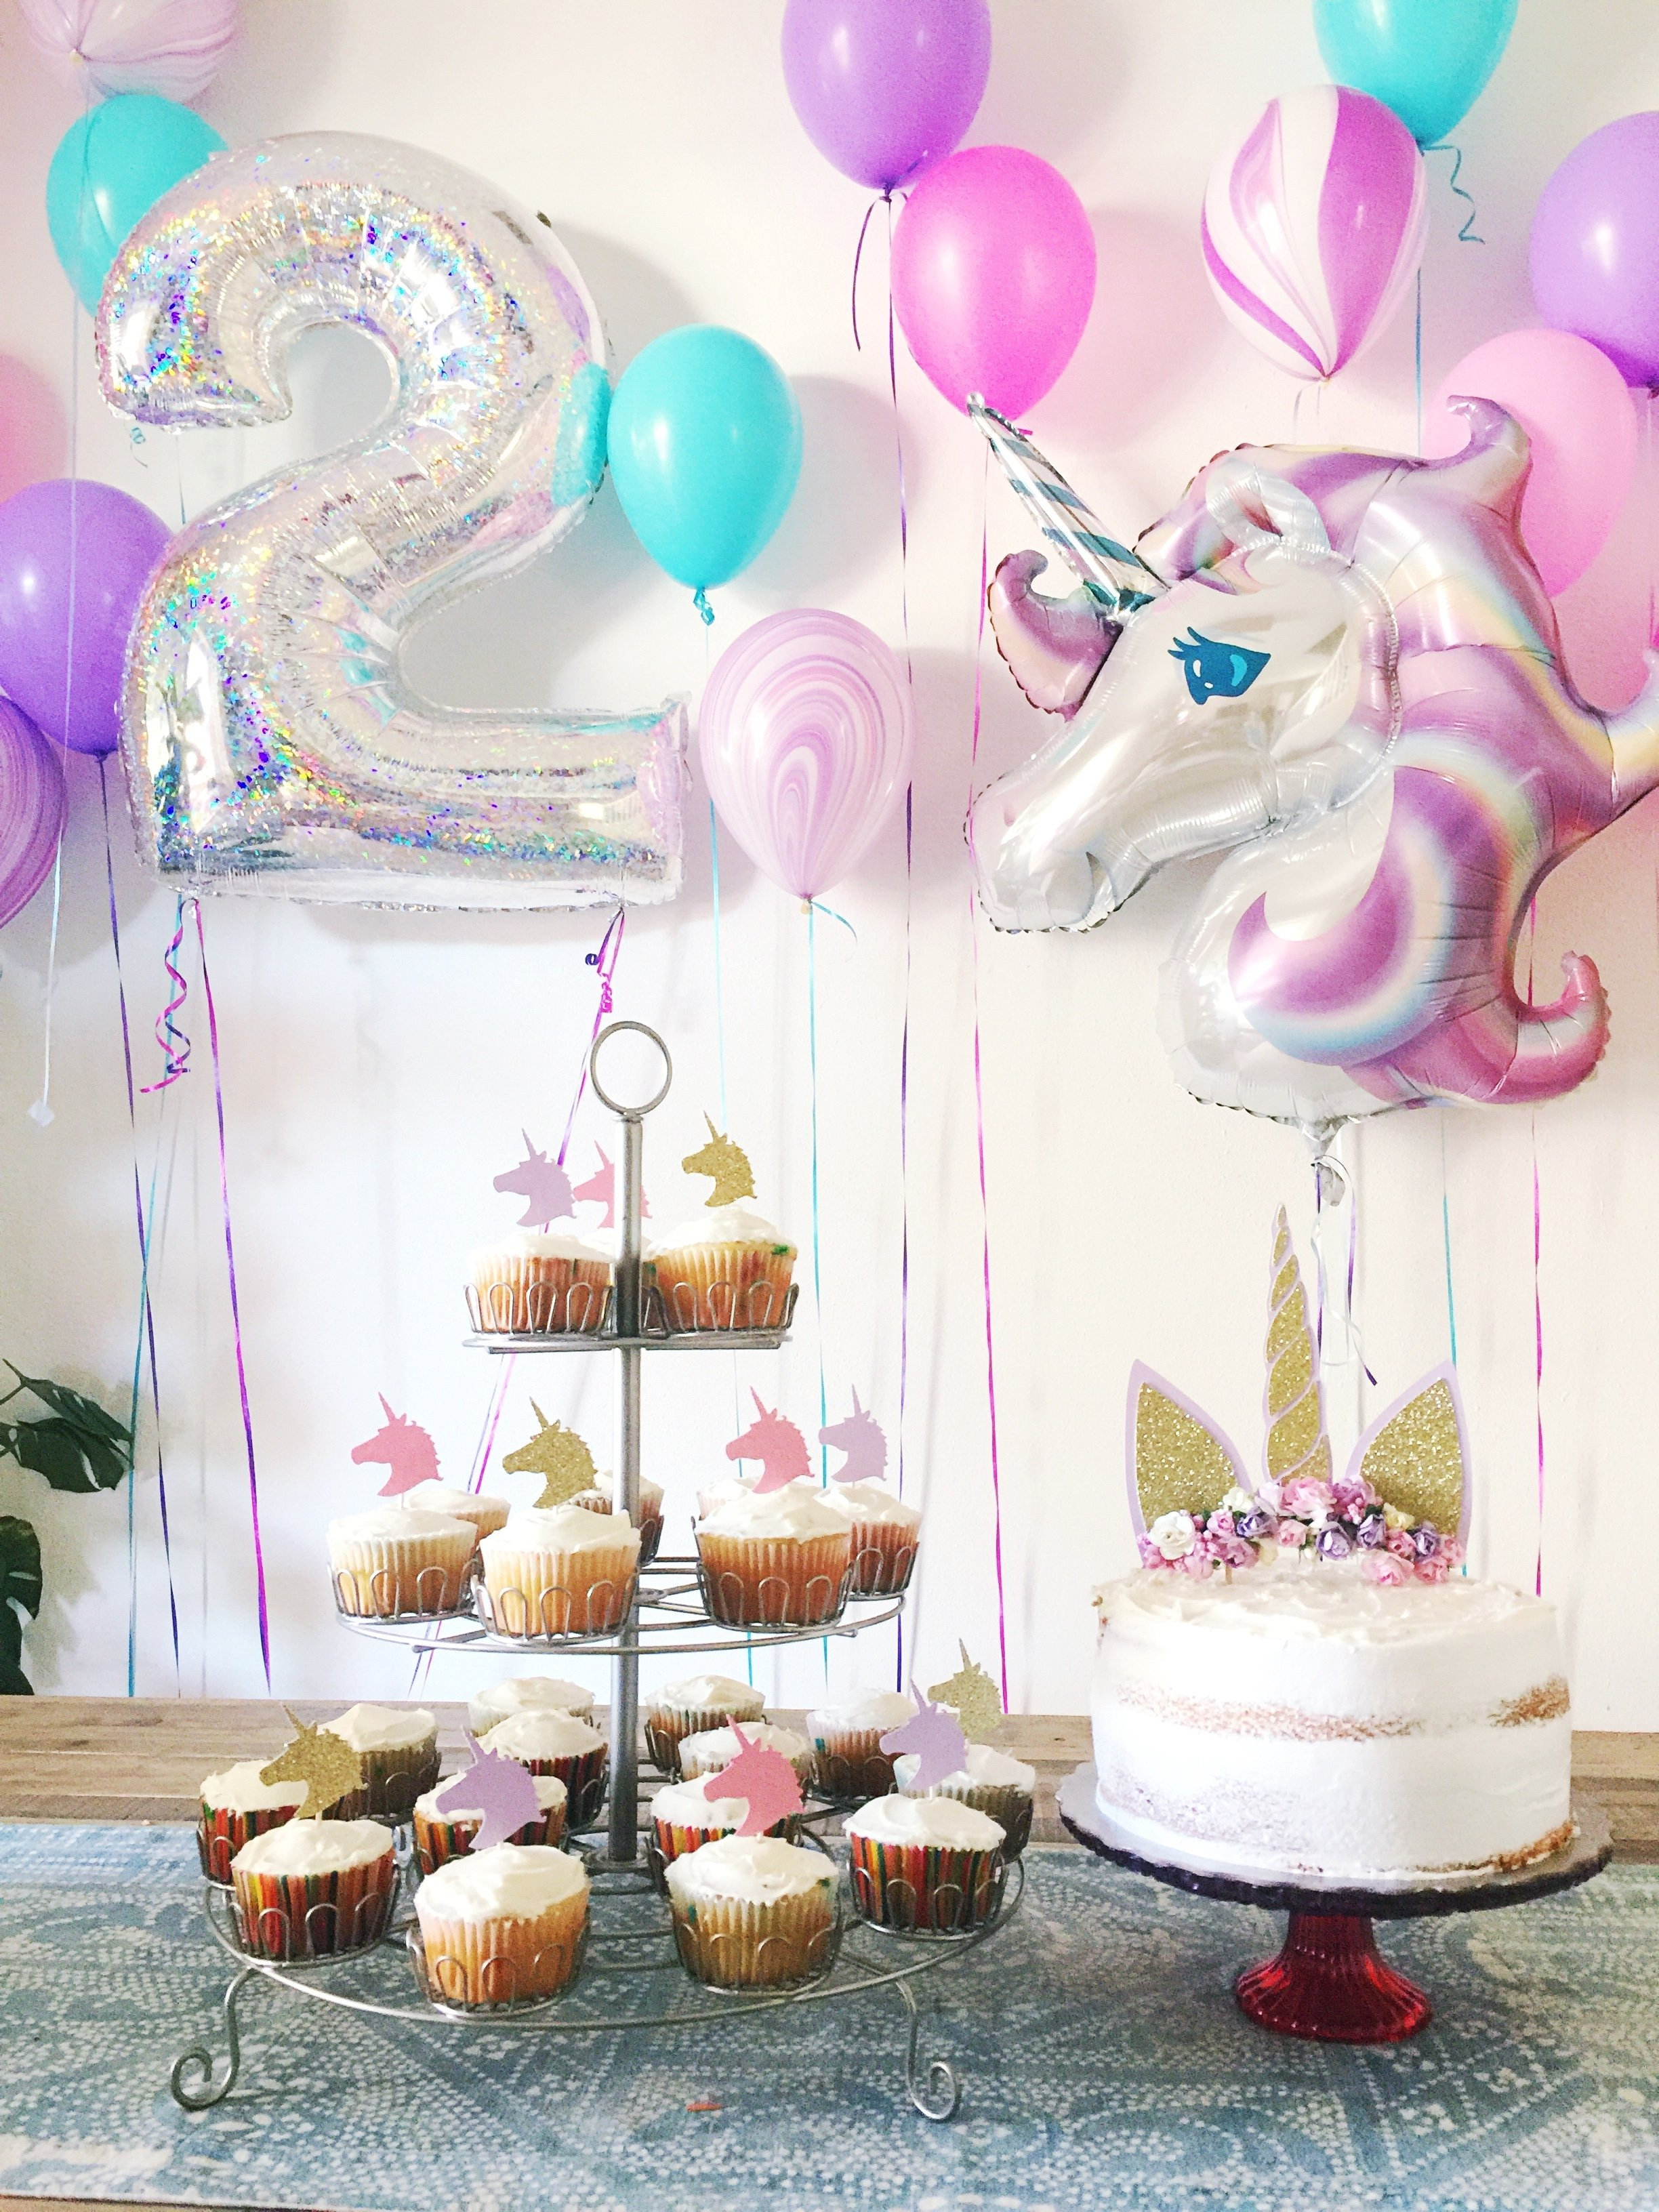 10 Trendy Birthday Ideas For A 2 Year Old